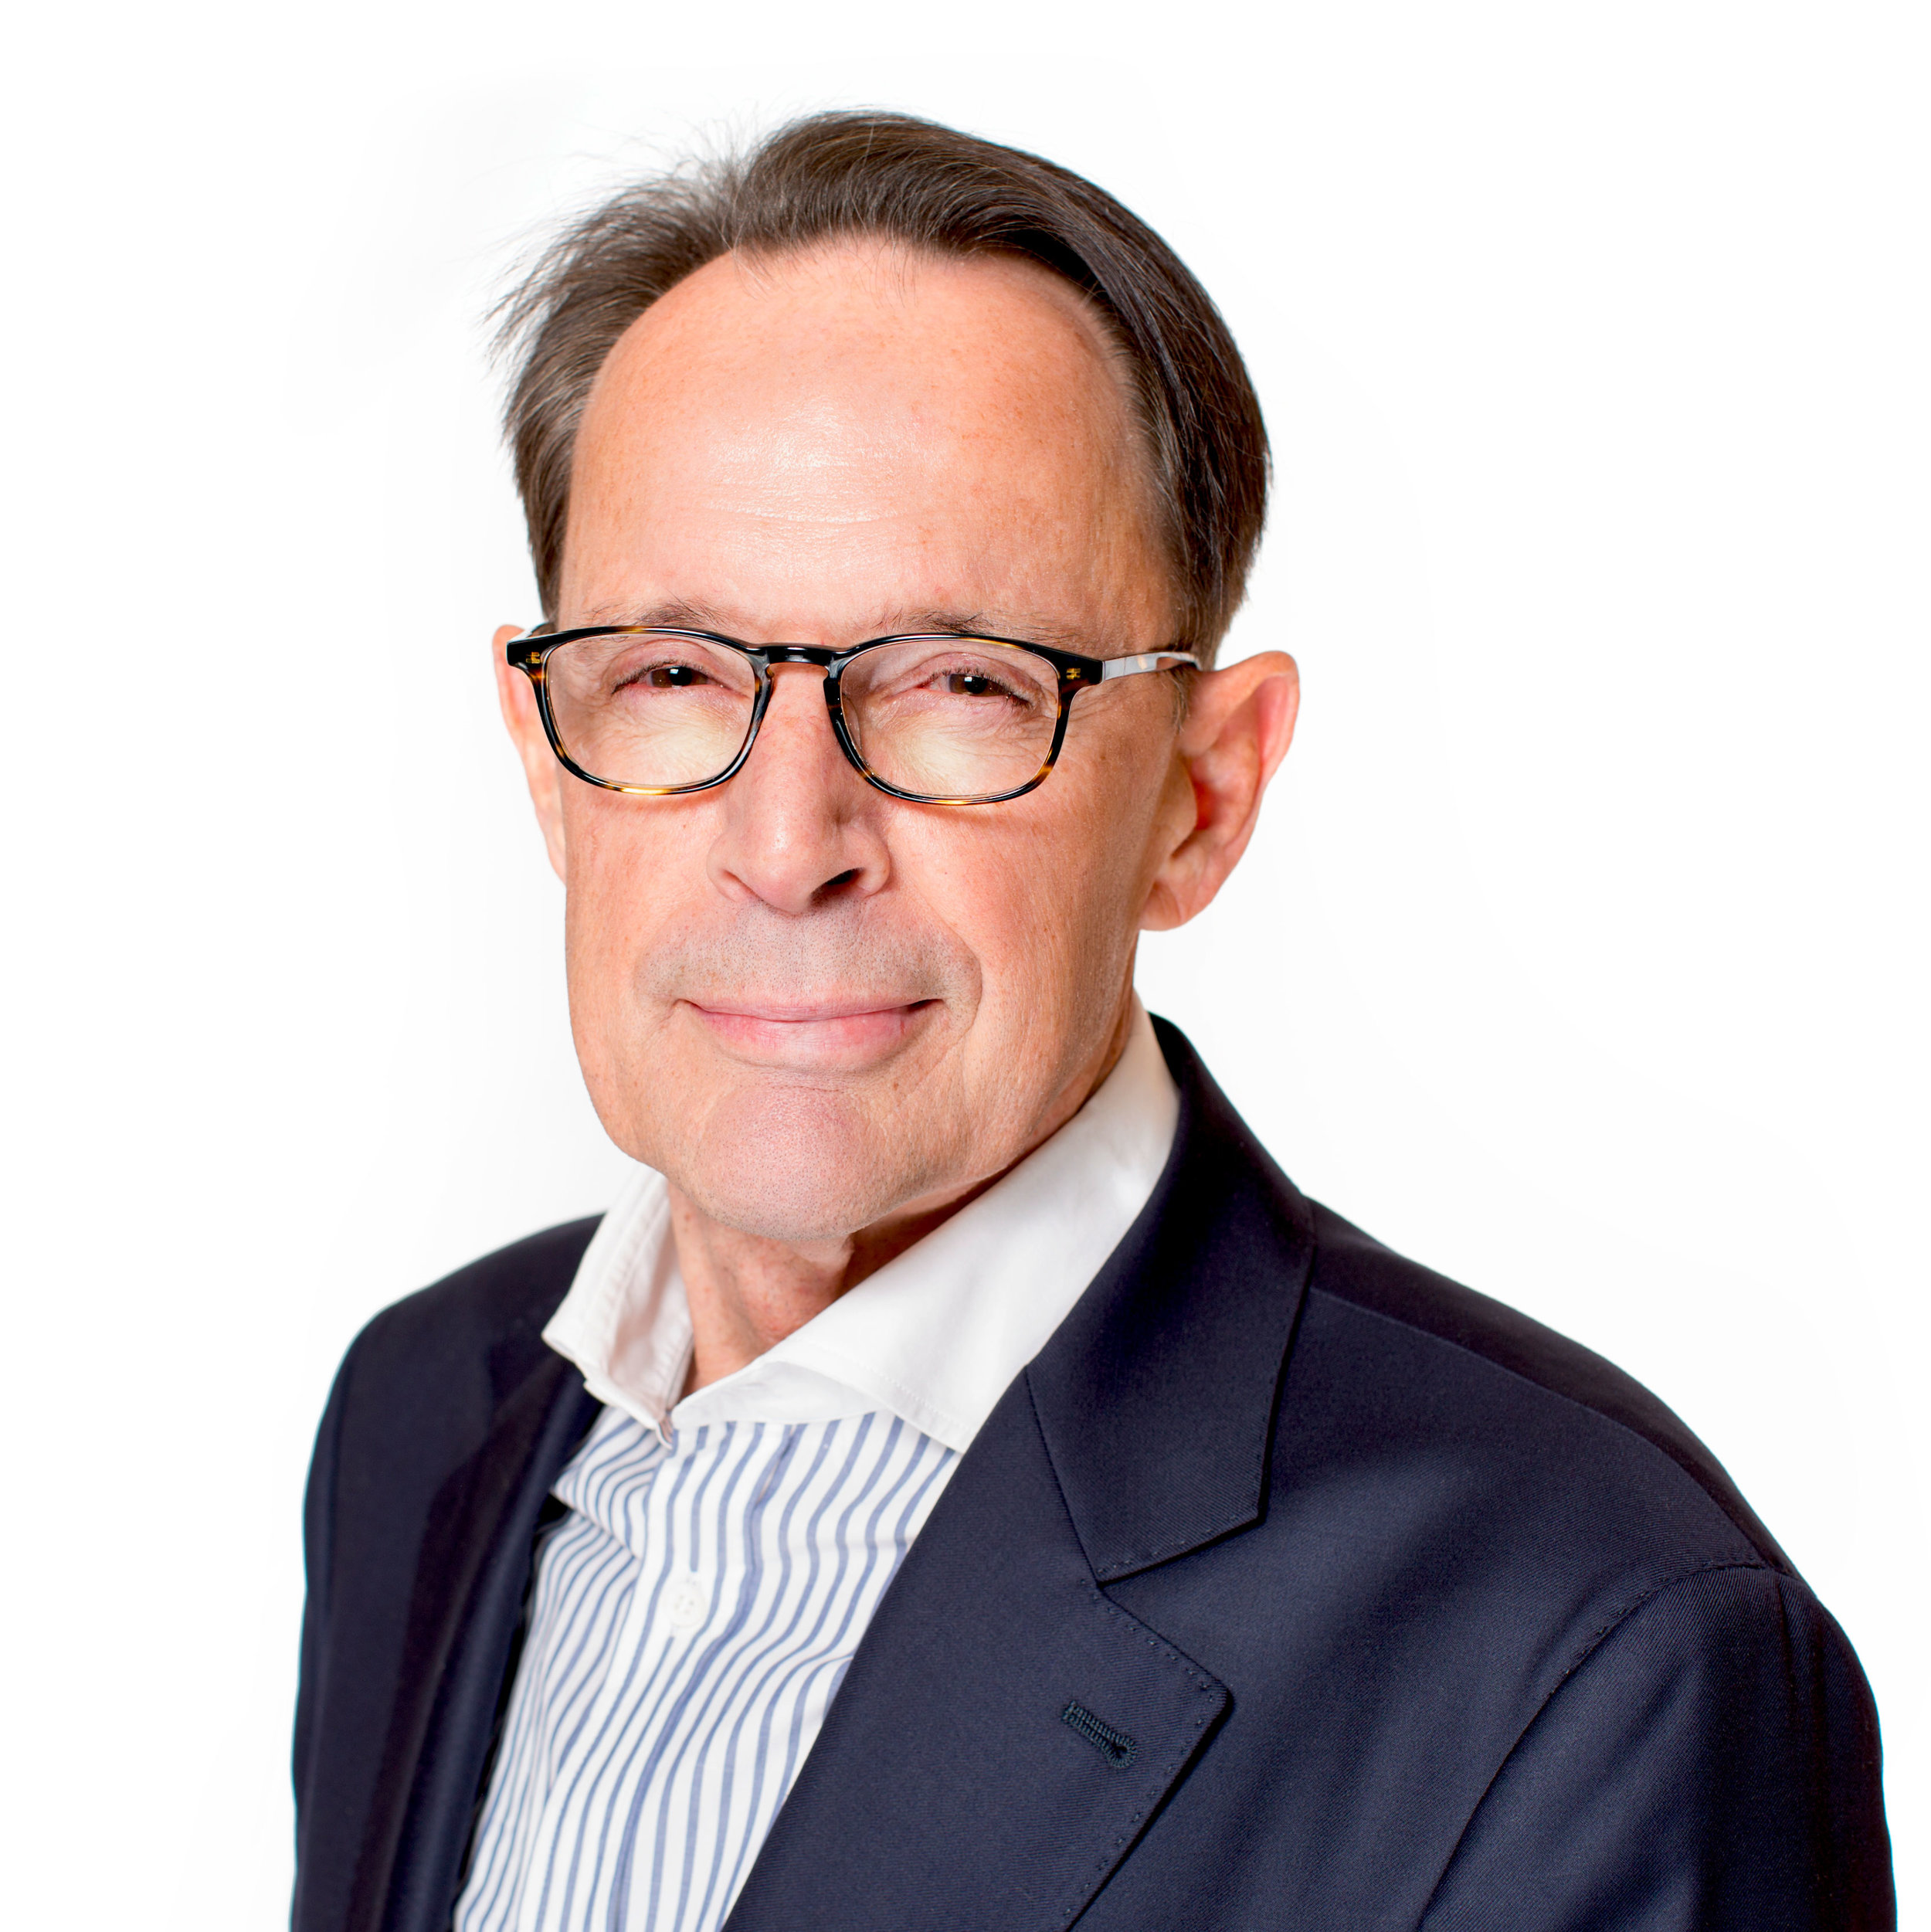 MICHAEL DU TOIT - CHIEF GROWTH OFFICER